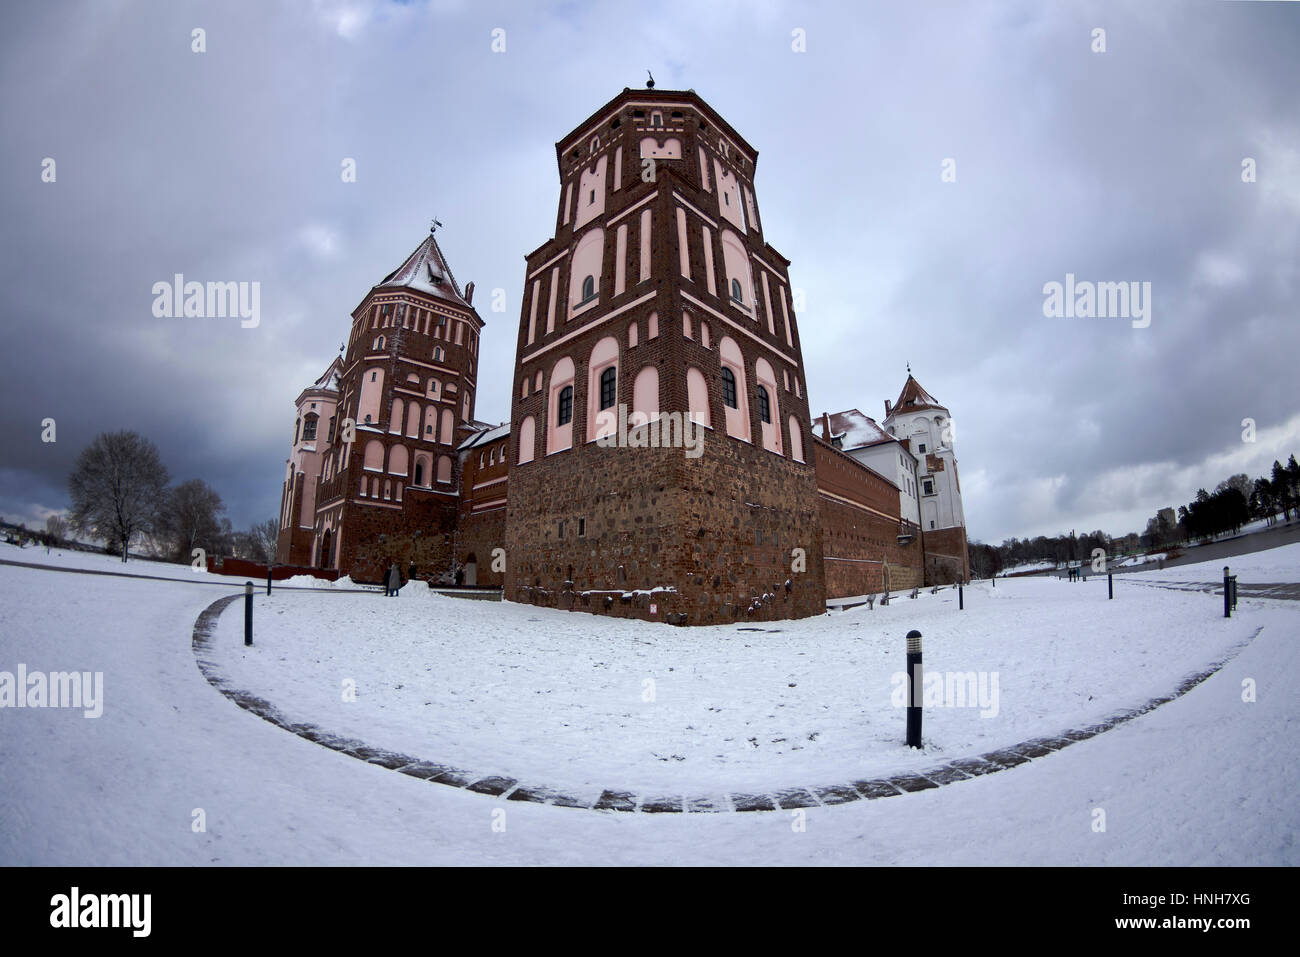 Castle in Mir, Belarus, historical place, polish fortress in a present time museum, winter day, january - Stock Image